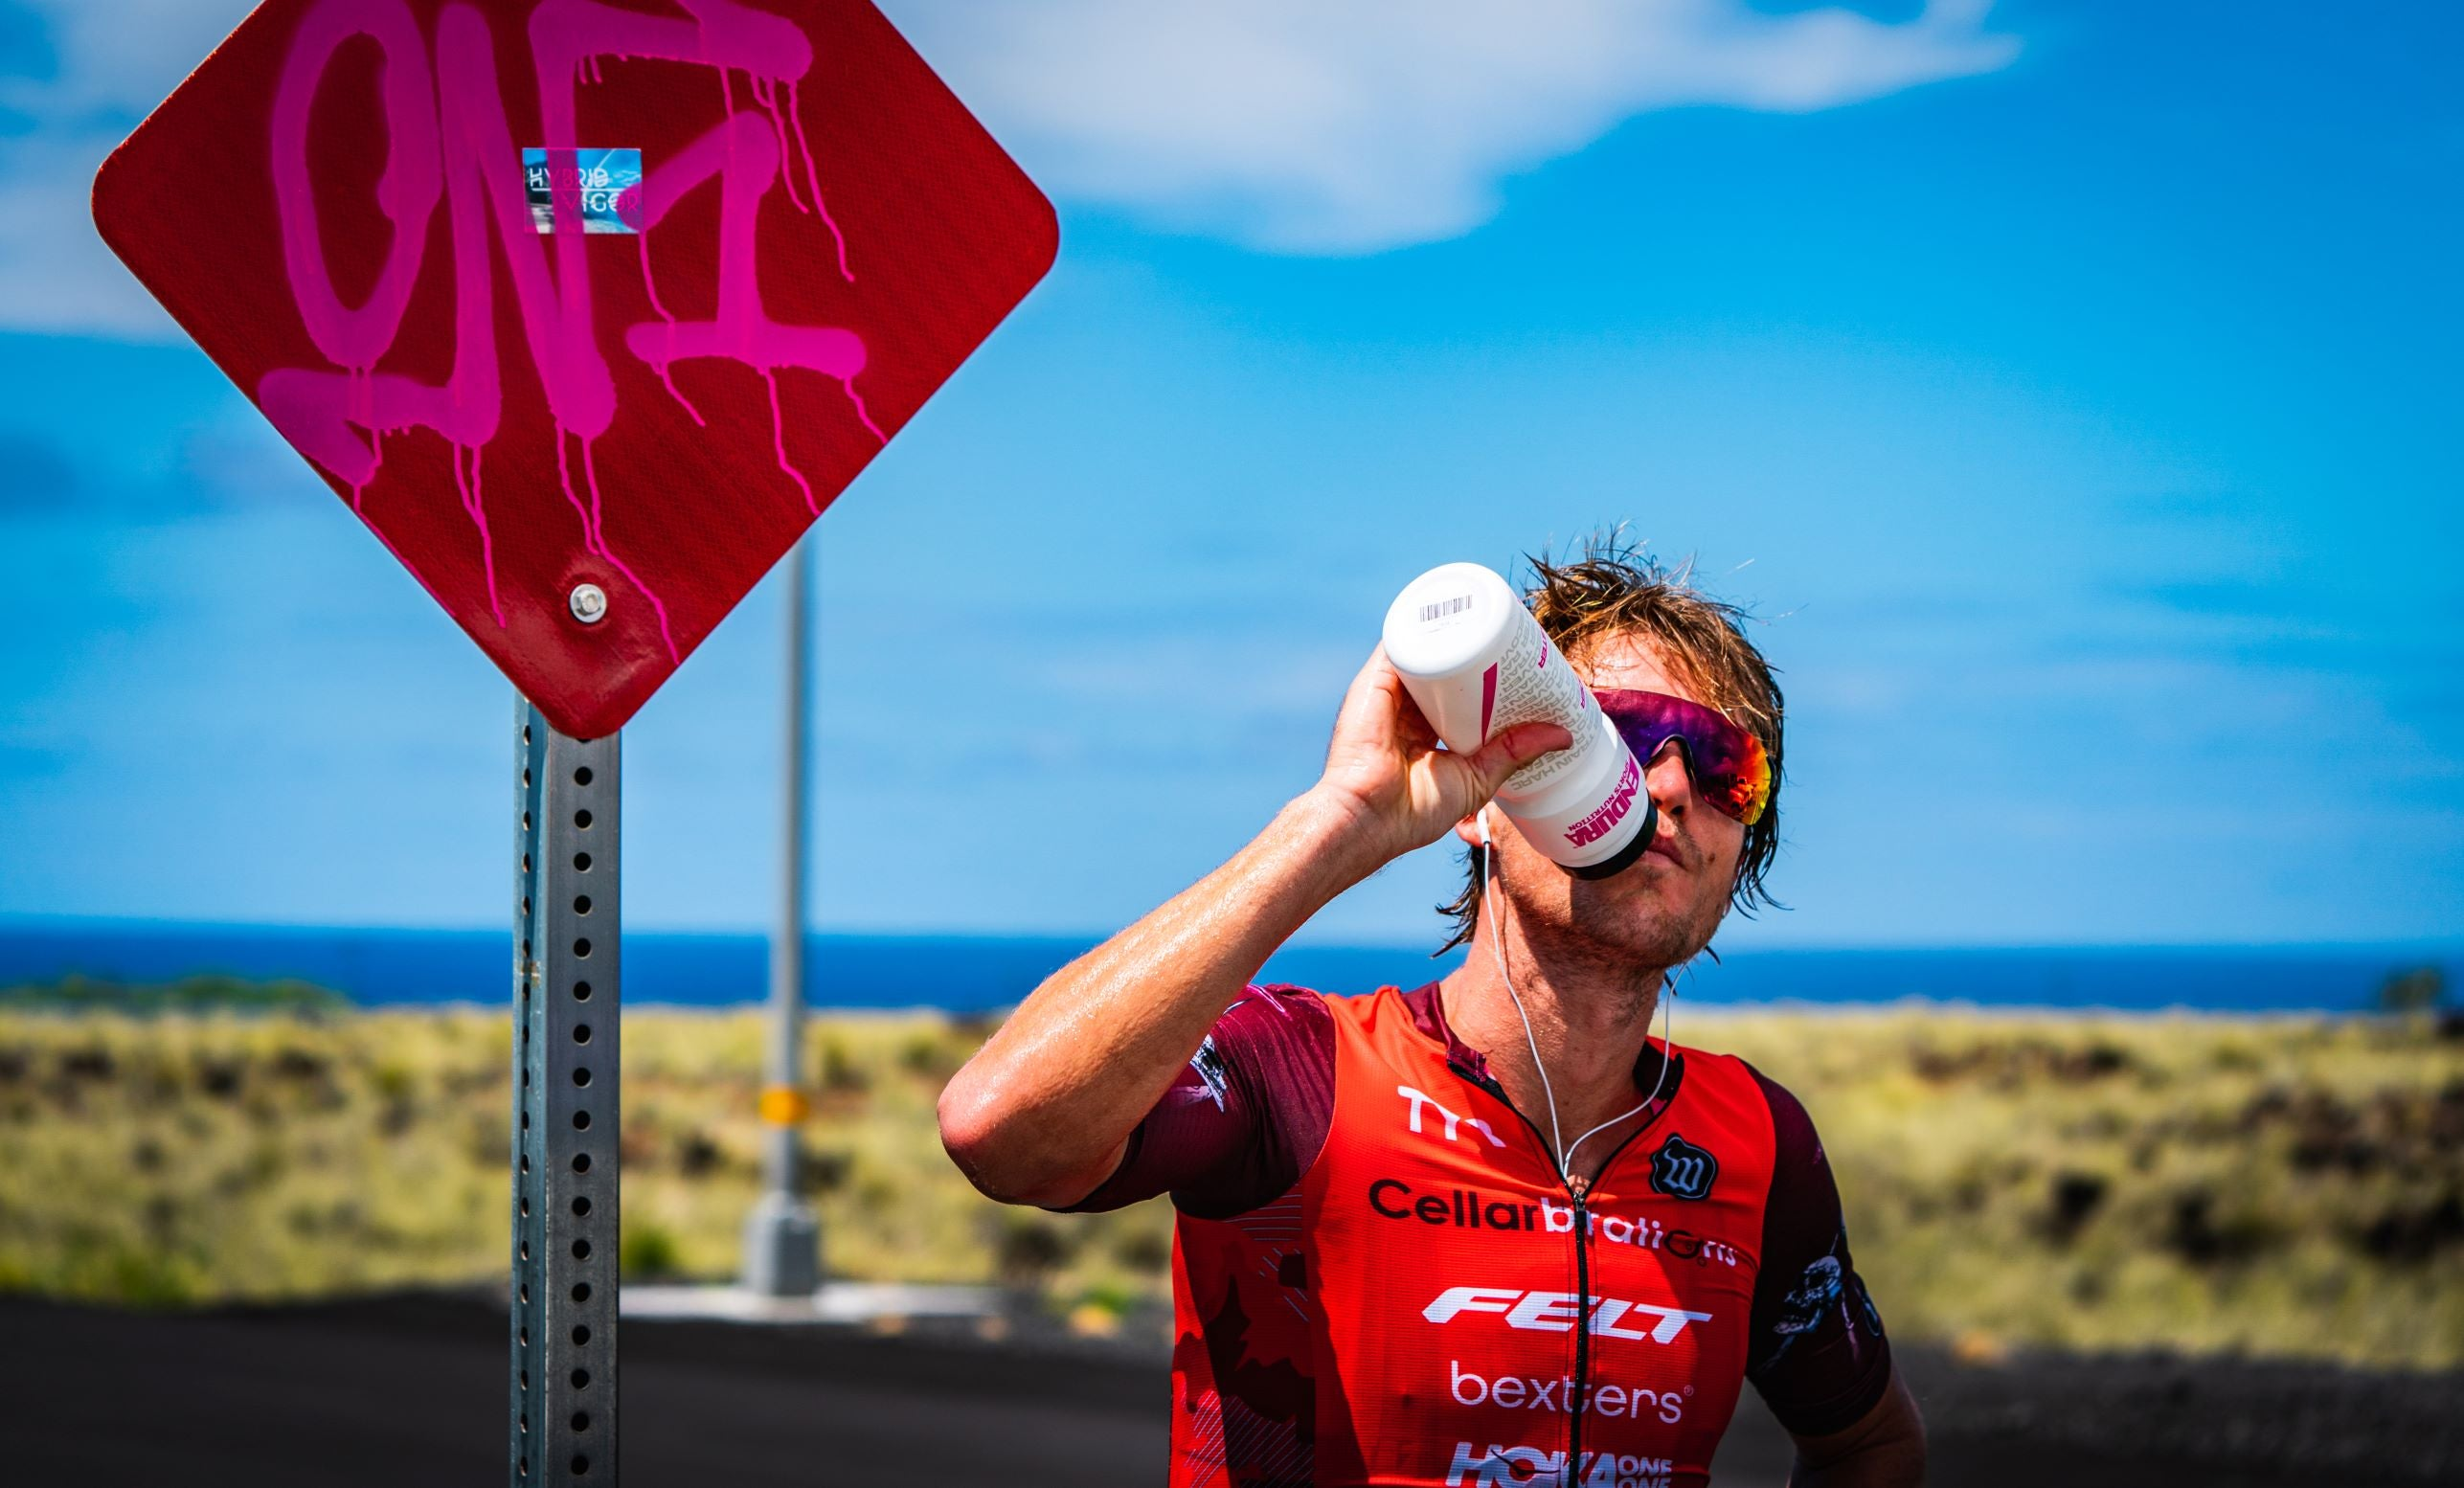 The leadup Up To The Biggest Race in Triathlon with Josh Amberger